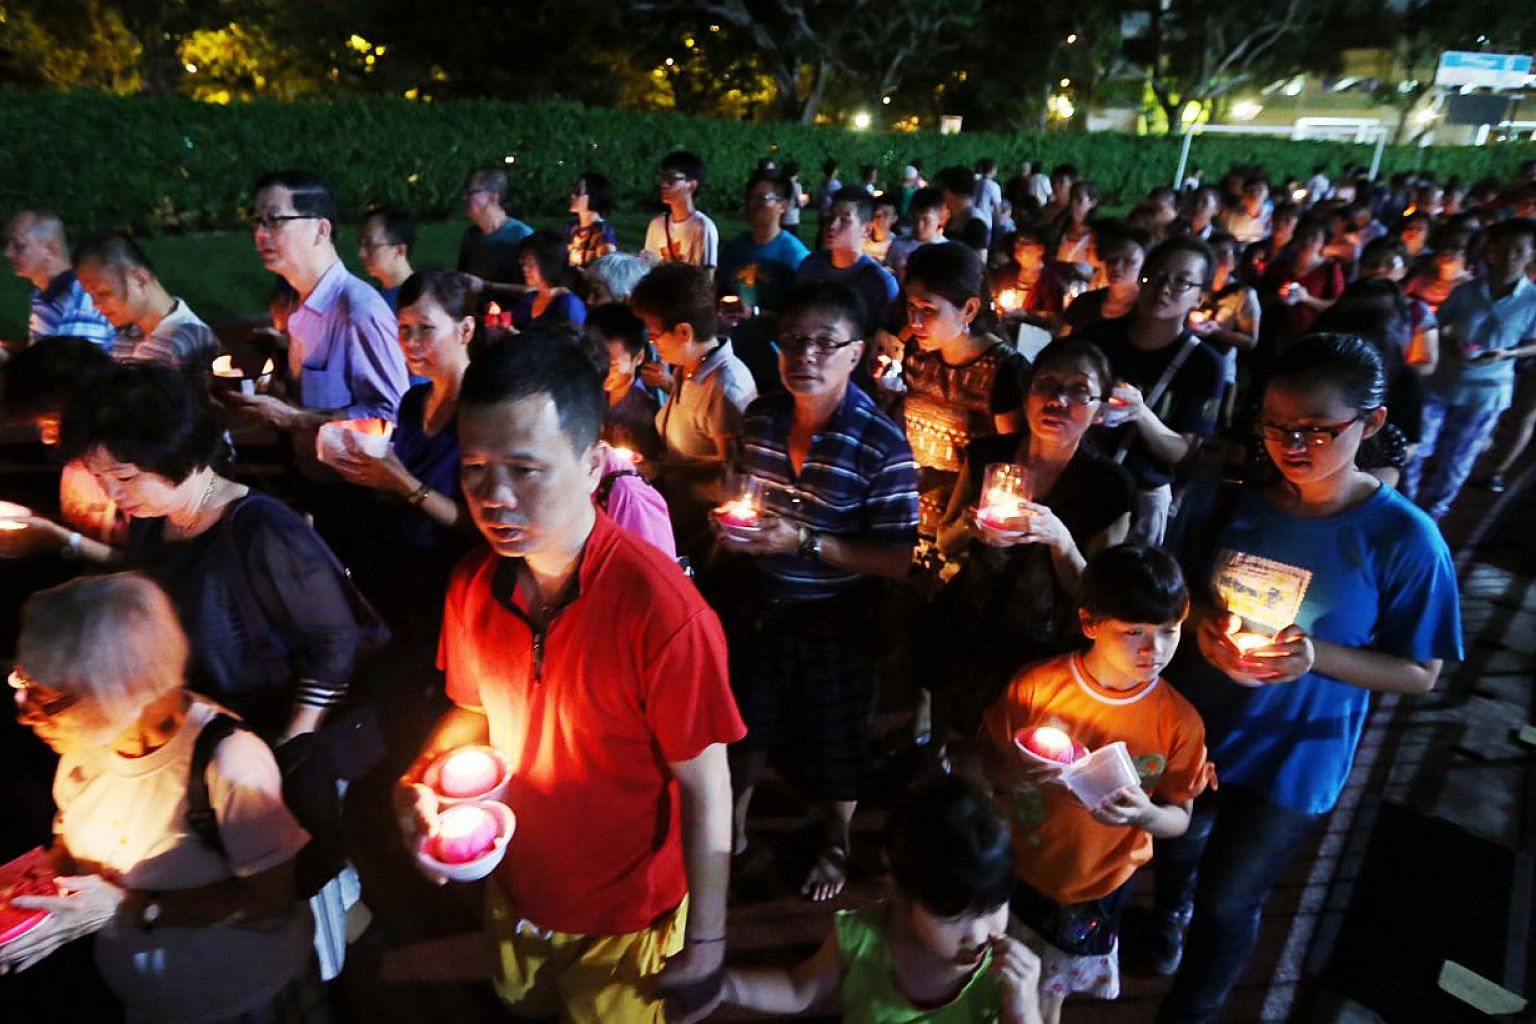 Buddhist devotees holding candles shaped like lotus flowers and praying for peace, at Hougang Stadium on May 24, 2015. -- PHOTO: LIANHE ZAOBAO